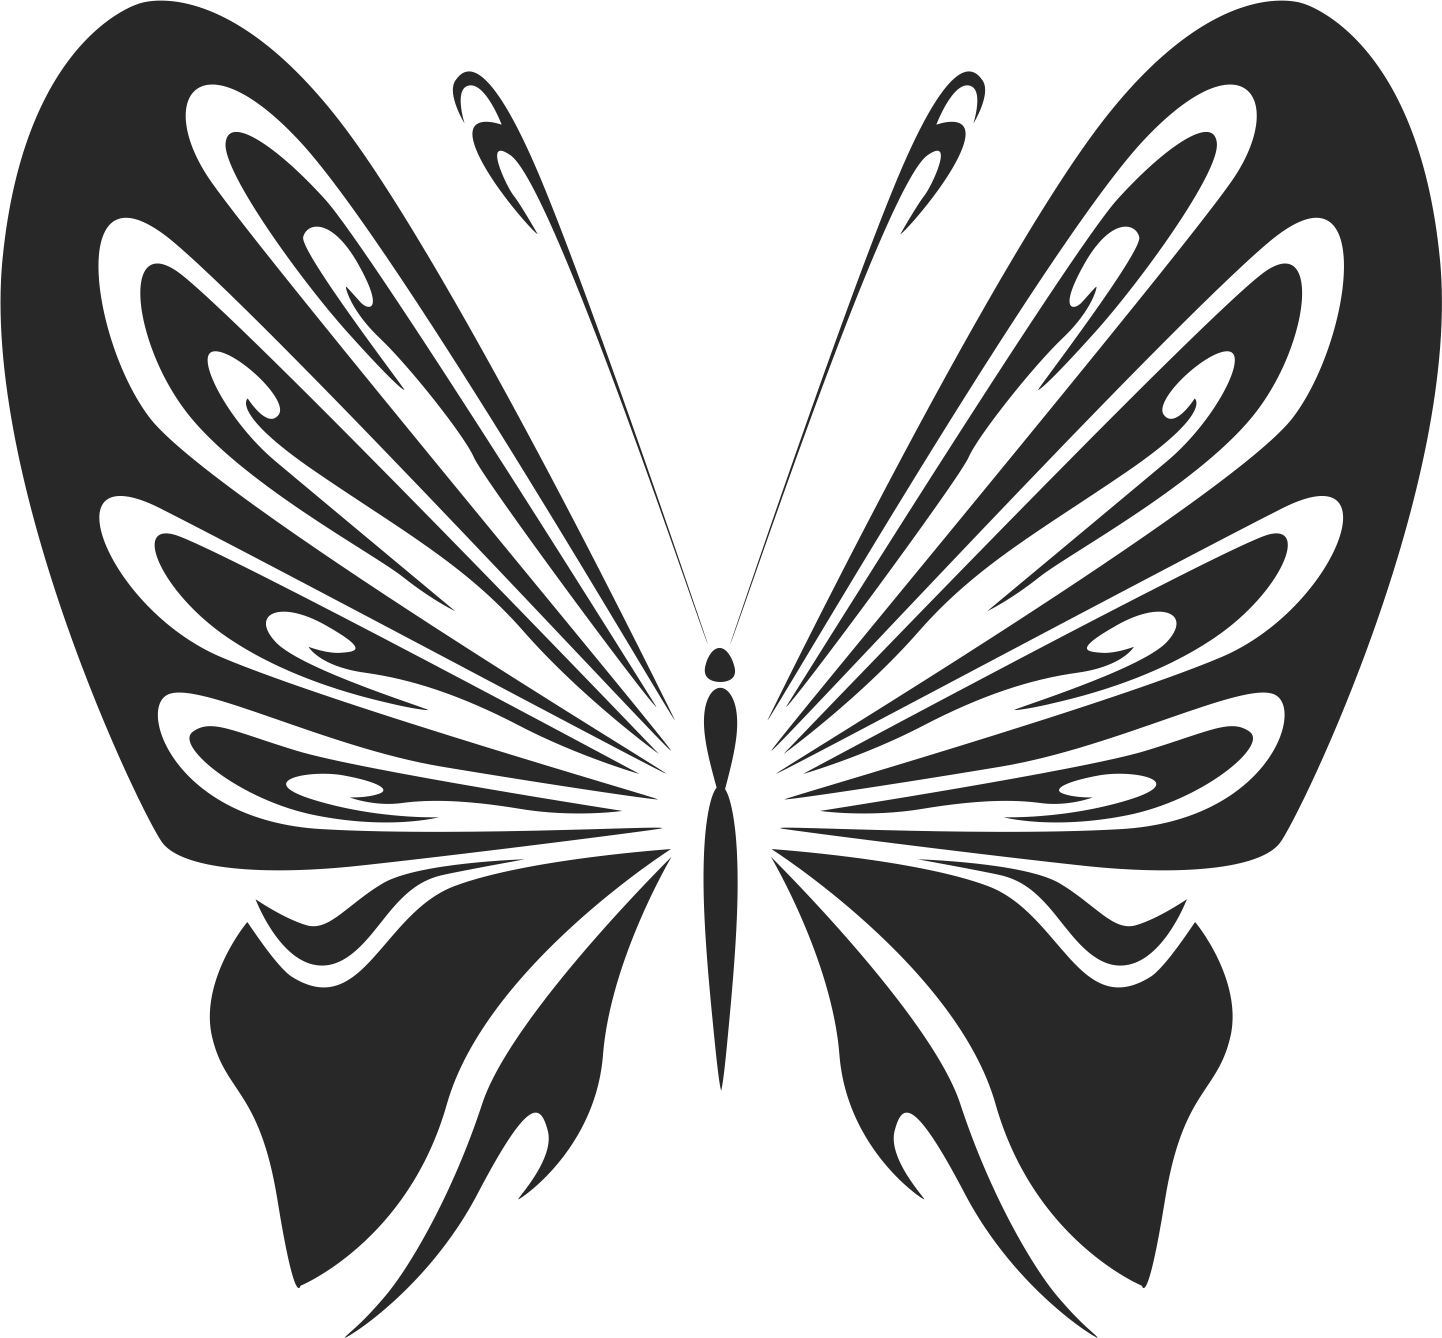 Vintage Butterfly Stencils Free Vector Cdr